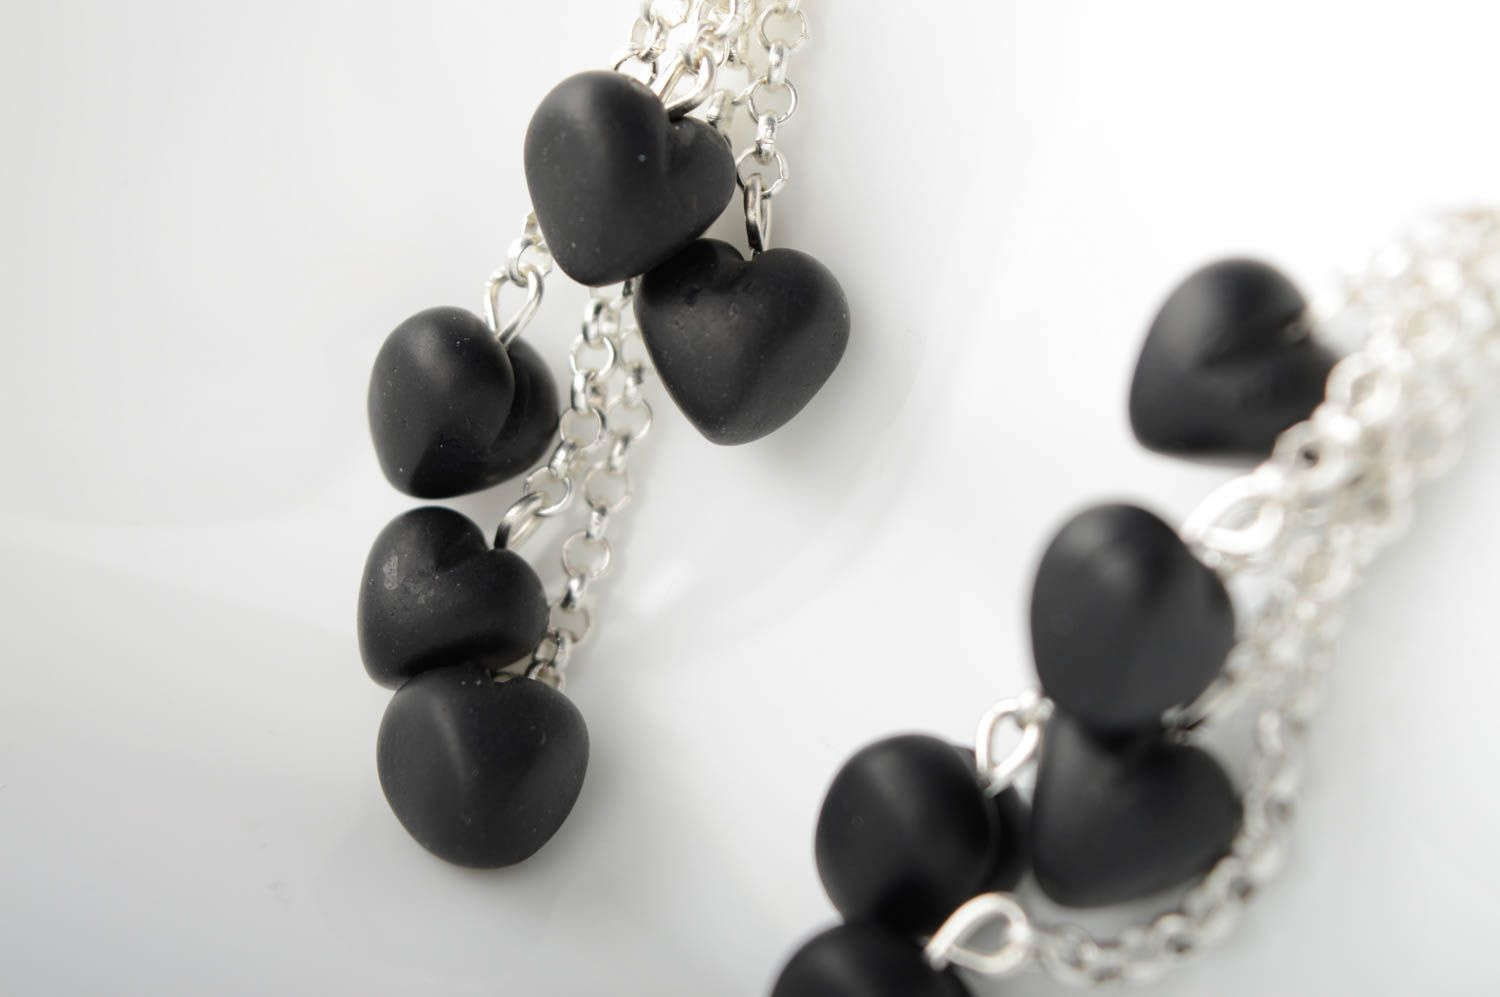 Polymer clay earrings with charms Black Heart photo 3